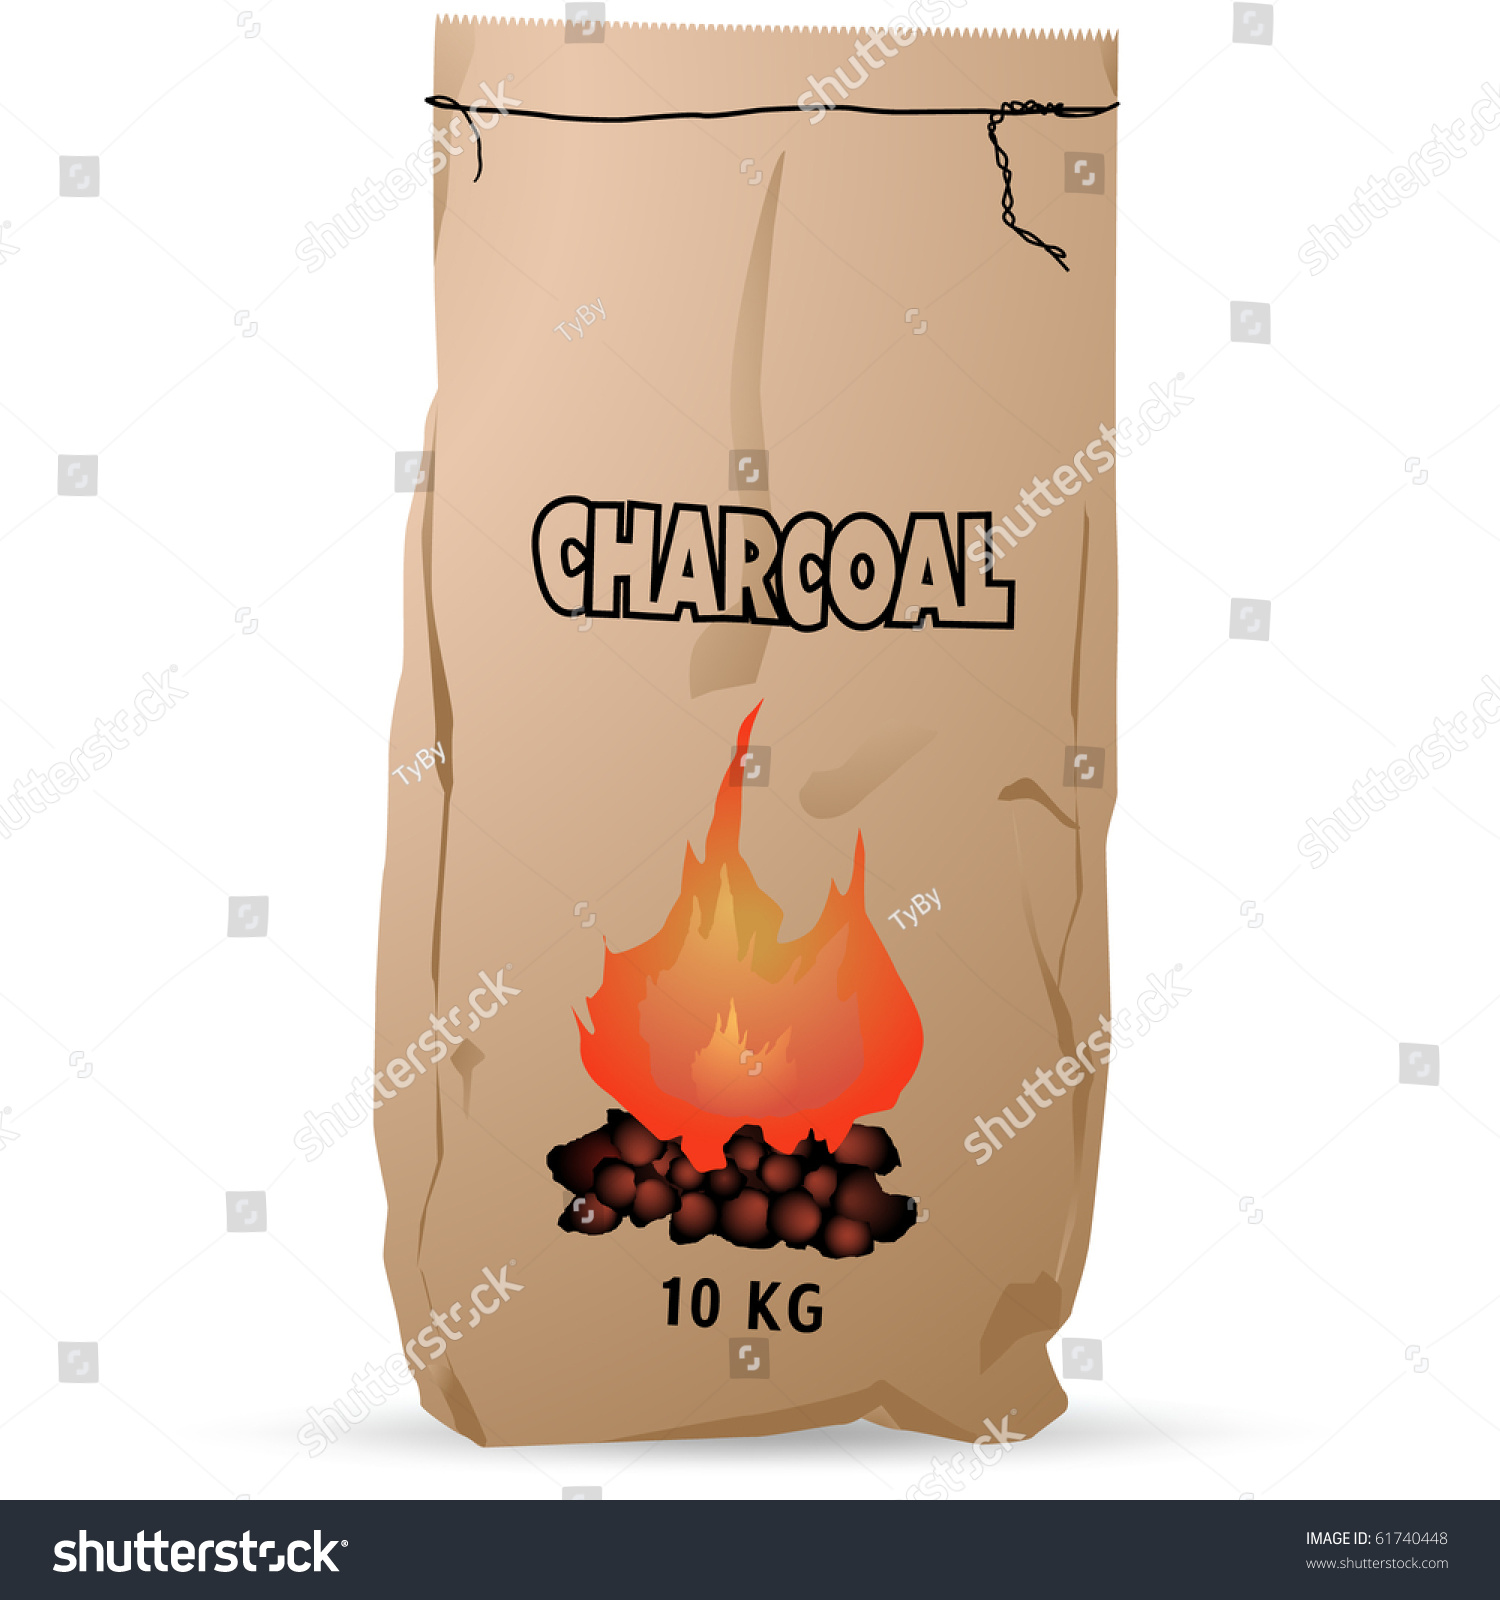 paper as charcoal The caloric content of the briquettes increased with the percent of biomass in the briquette the lowest value was found to be 448 kj/g for 100 percent paper briquettes and the highest was 595 kj/g for 100 percent biomass briquettes.